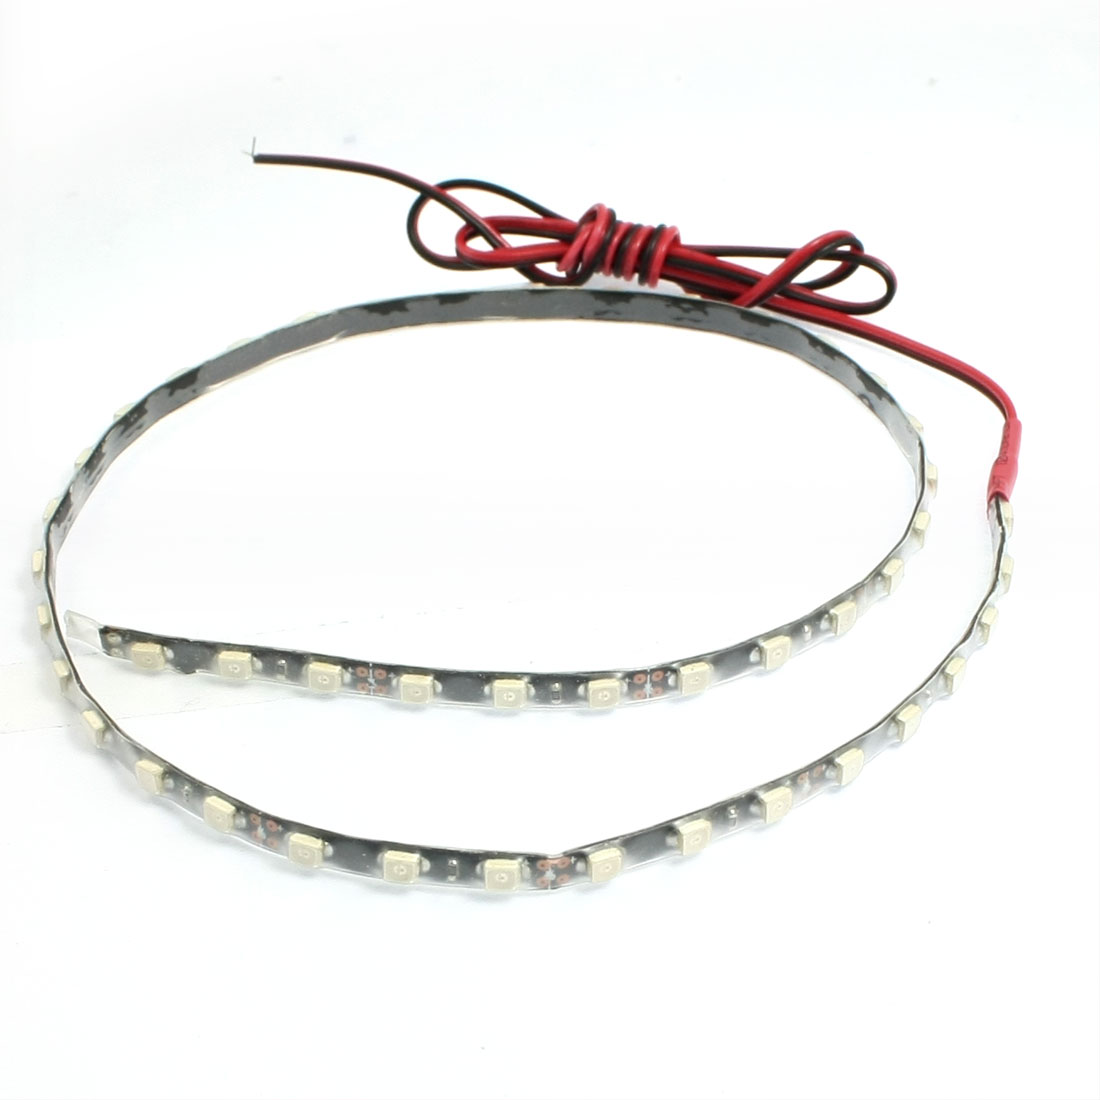 Car Truck Adhesive 45 LED 1210 SMD Decorative Flexible Light Strip Red 45cm